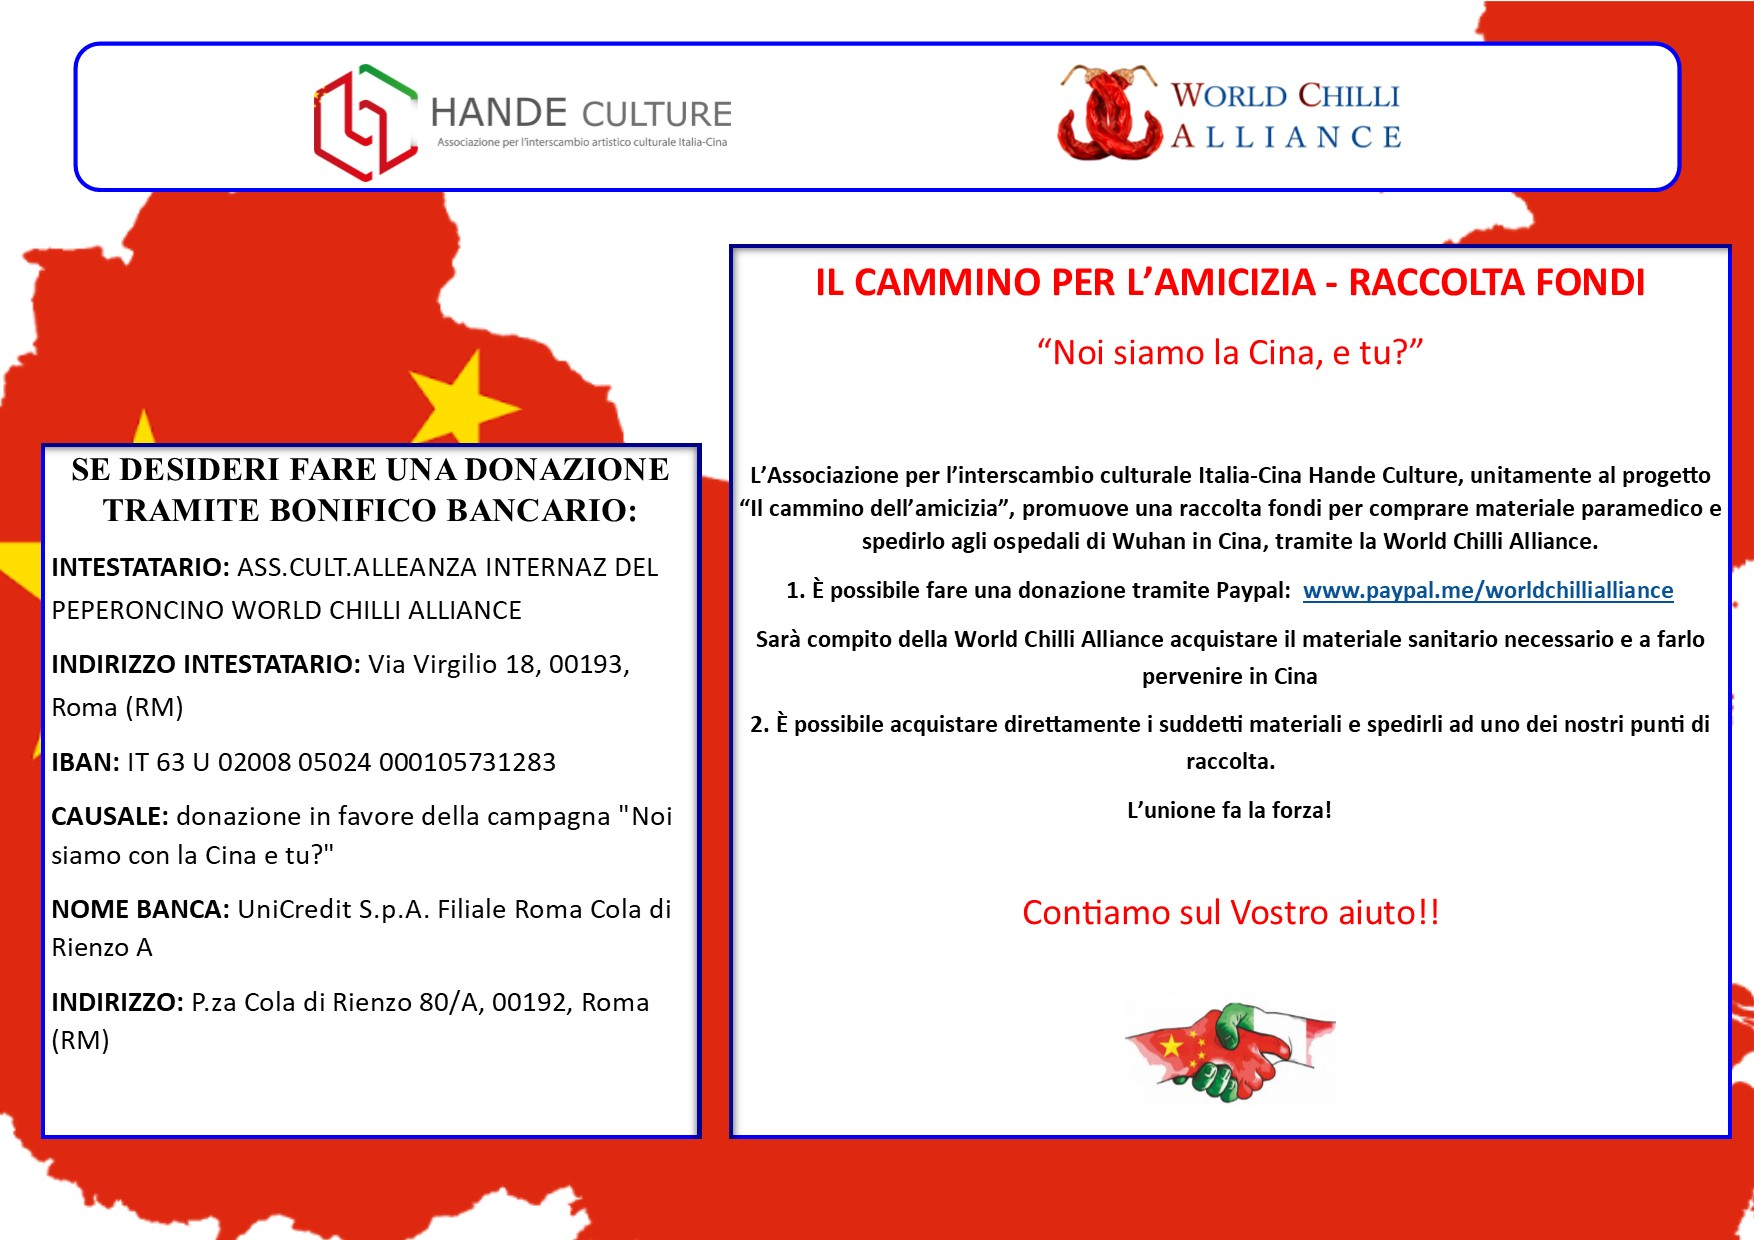 Hande Culture Association is with World Chilli Alliance in support of China's fight against the coronavius outbreak